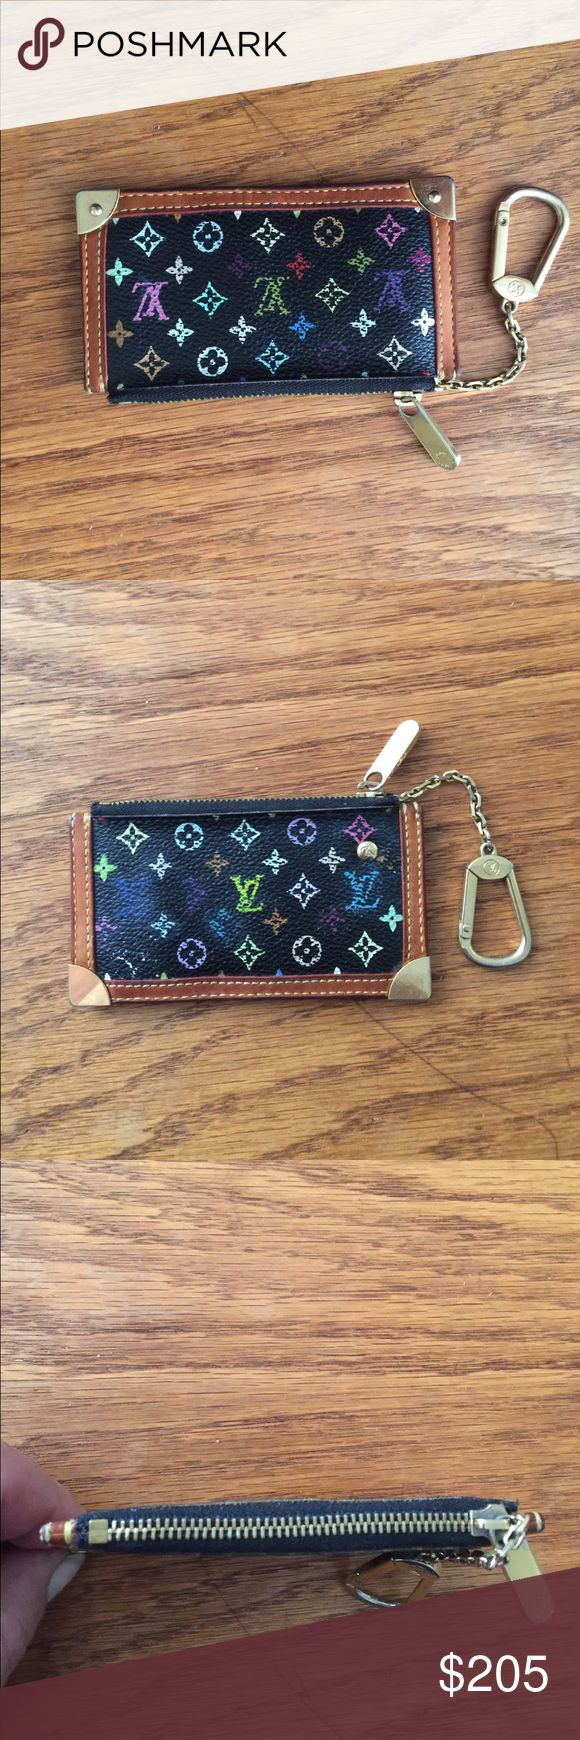 Authentic Louis Vuitton wallet Authentic Louis Vuitton Pochette coin case keychain purse very minor wear like new condition no rips tears stitching is perfect no tarnish on gold looks new code is behind zipper hard to see on pics CA0093 Louis Vuitton Bags Wallets